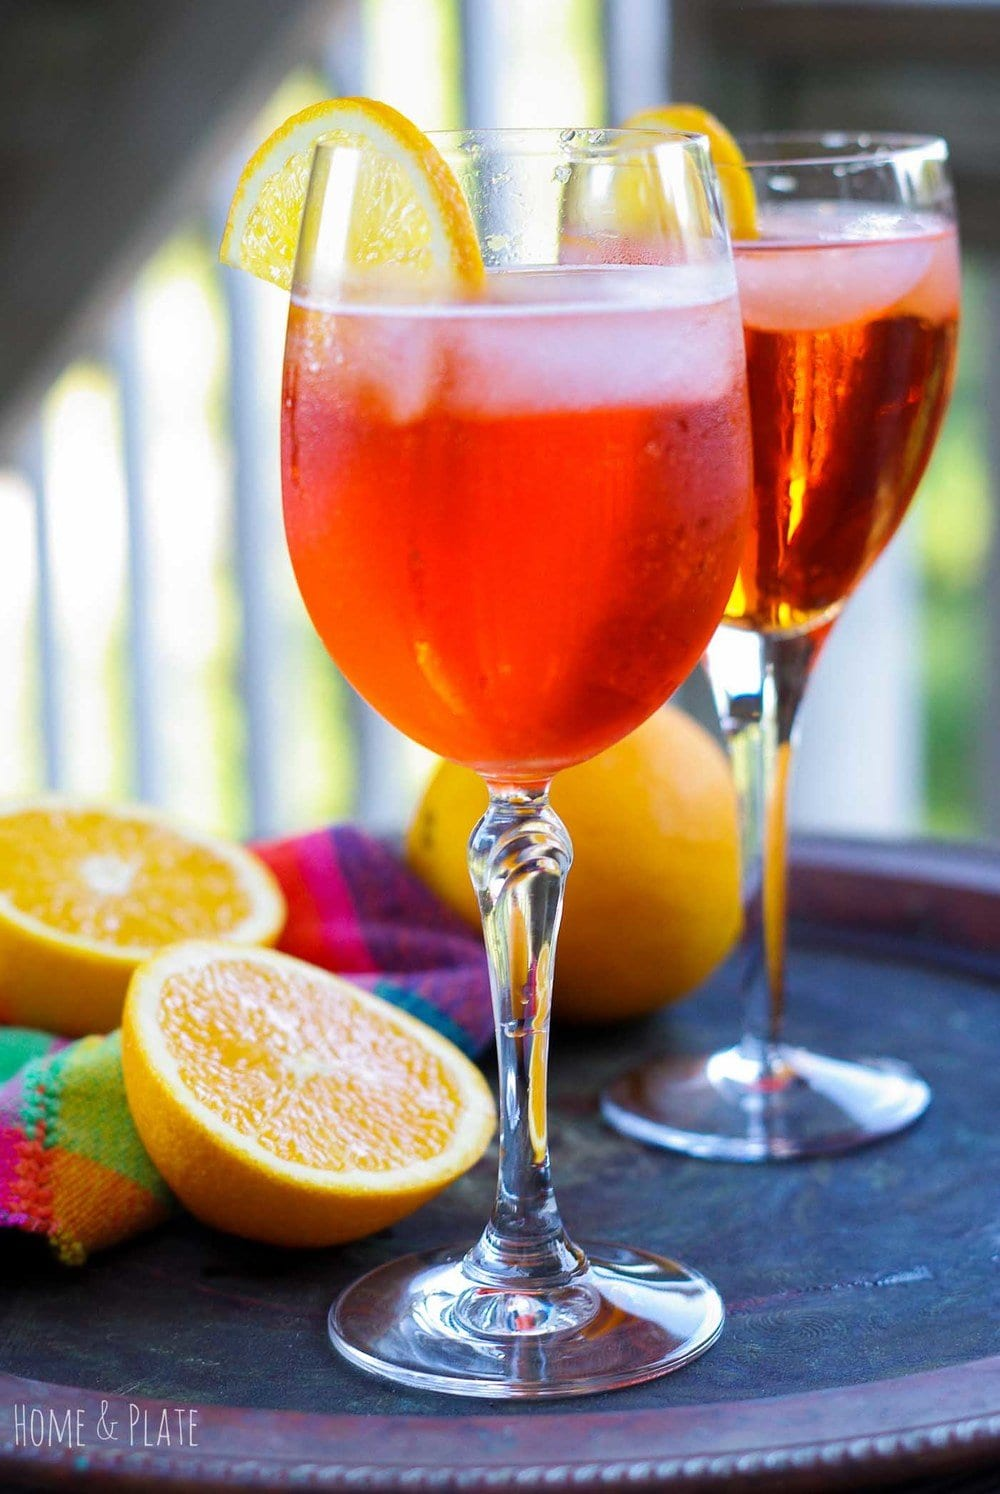 A glass of an Italian Aperol Spritzer on a platter surrounded by oranges.